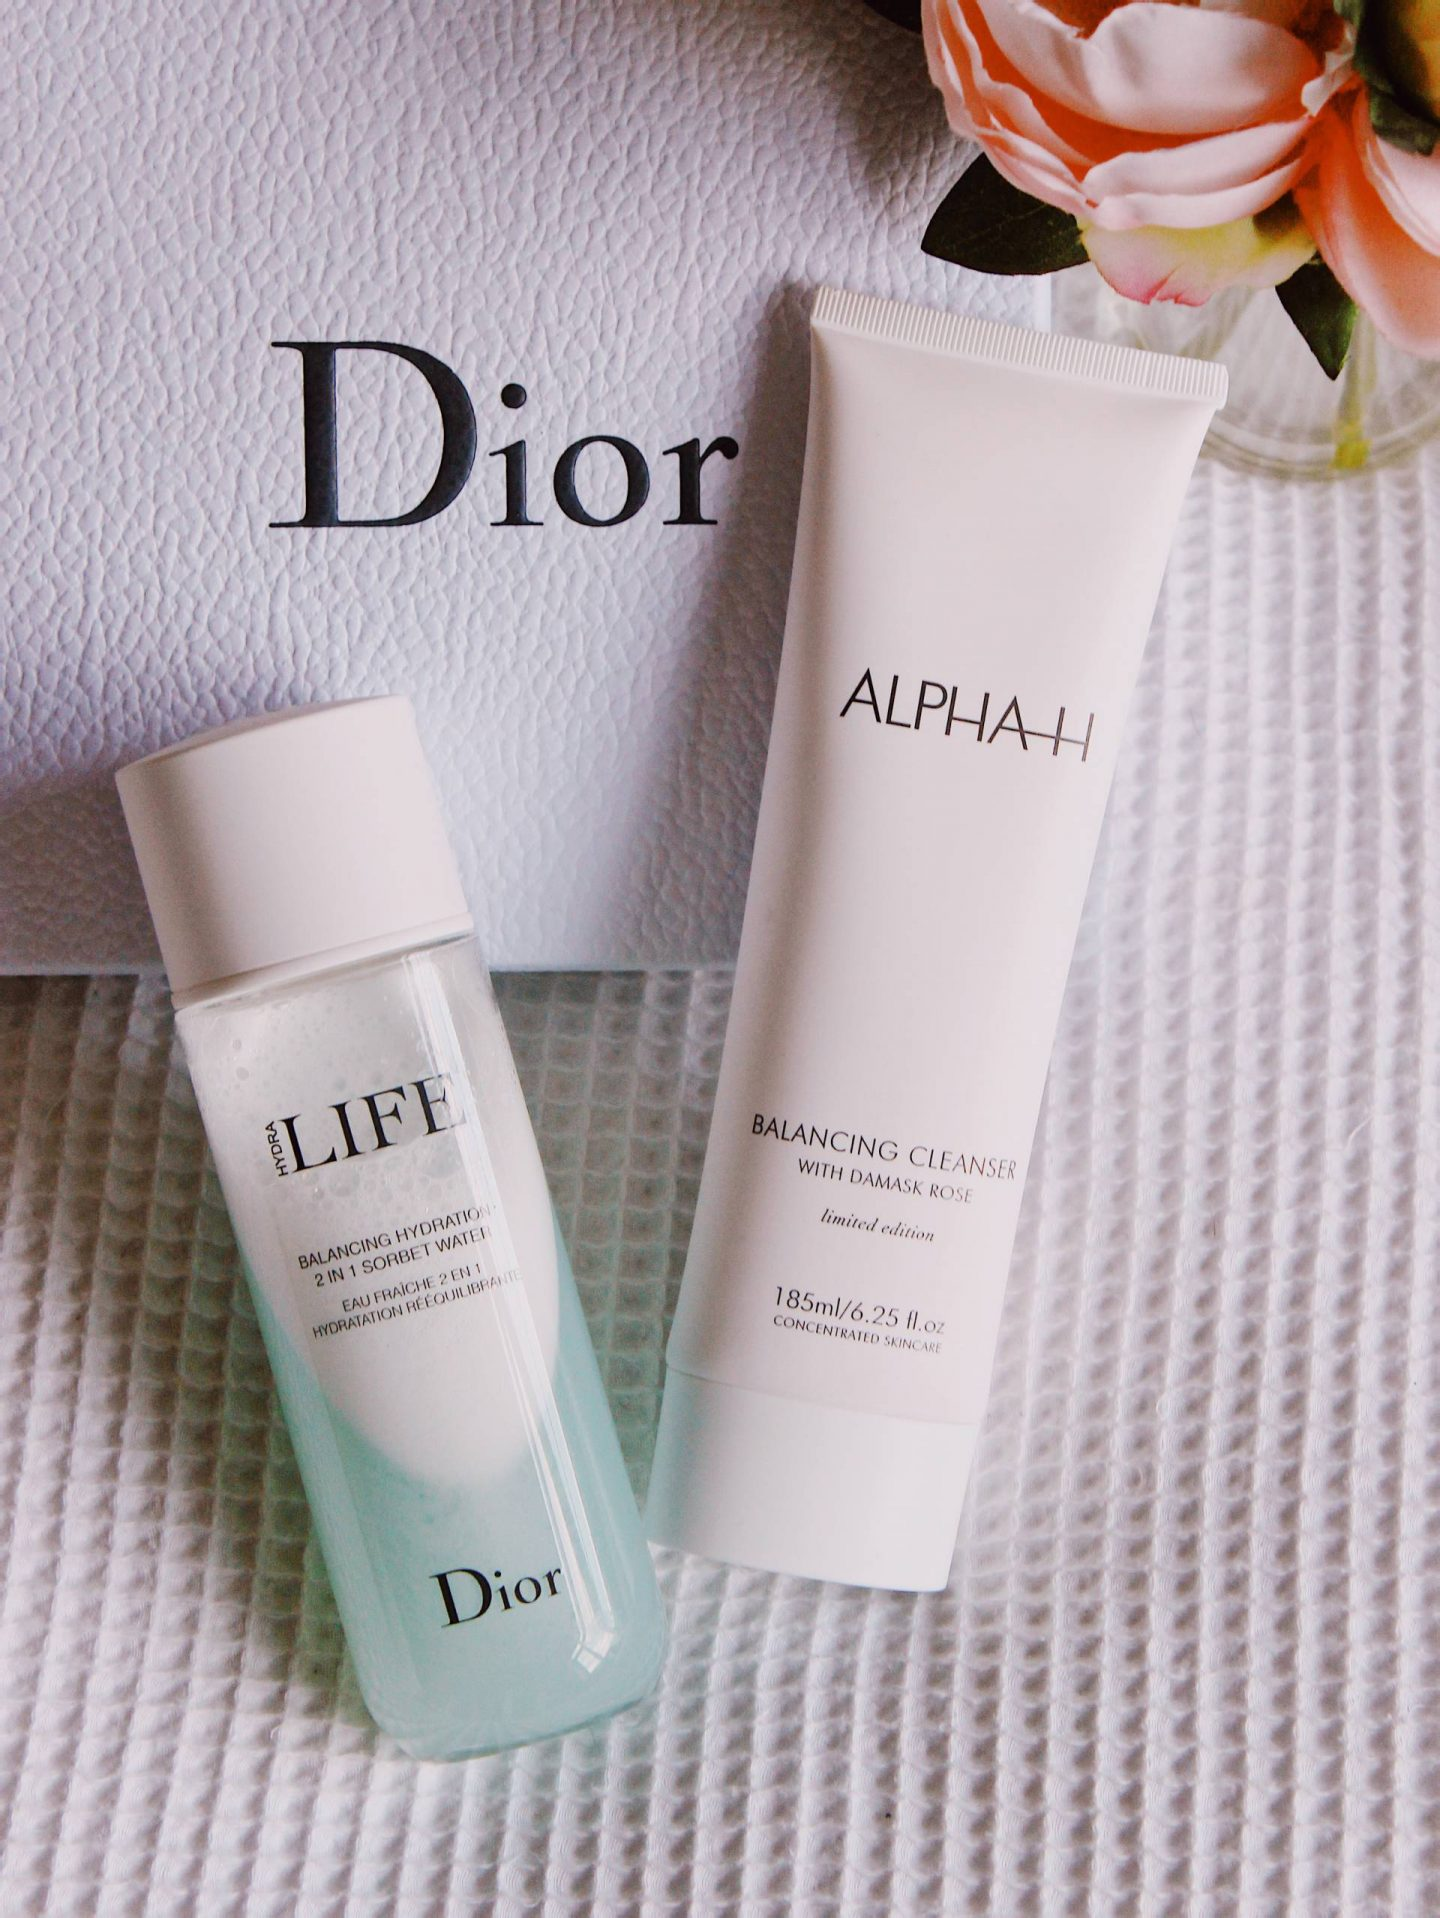 Alpha H balancing cleanser and Dior hydrating sorbet water